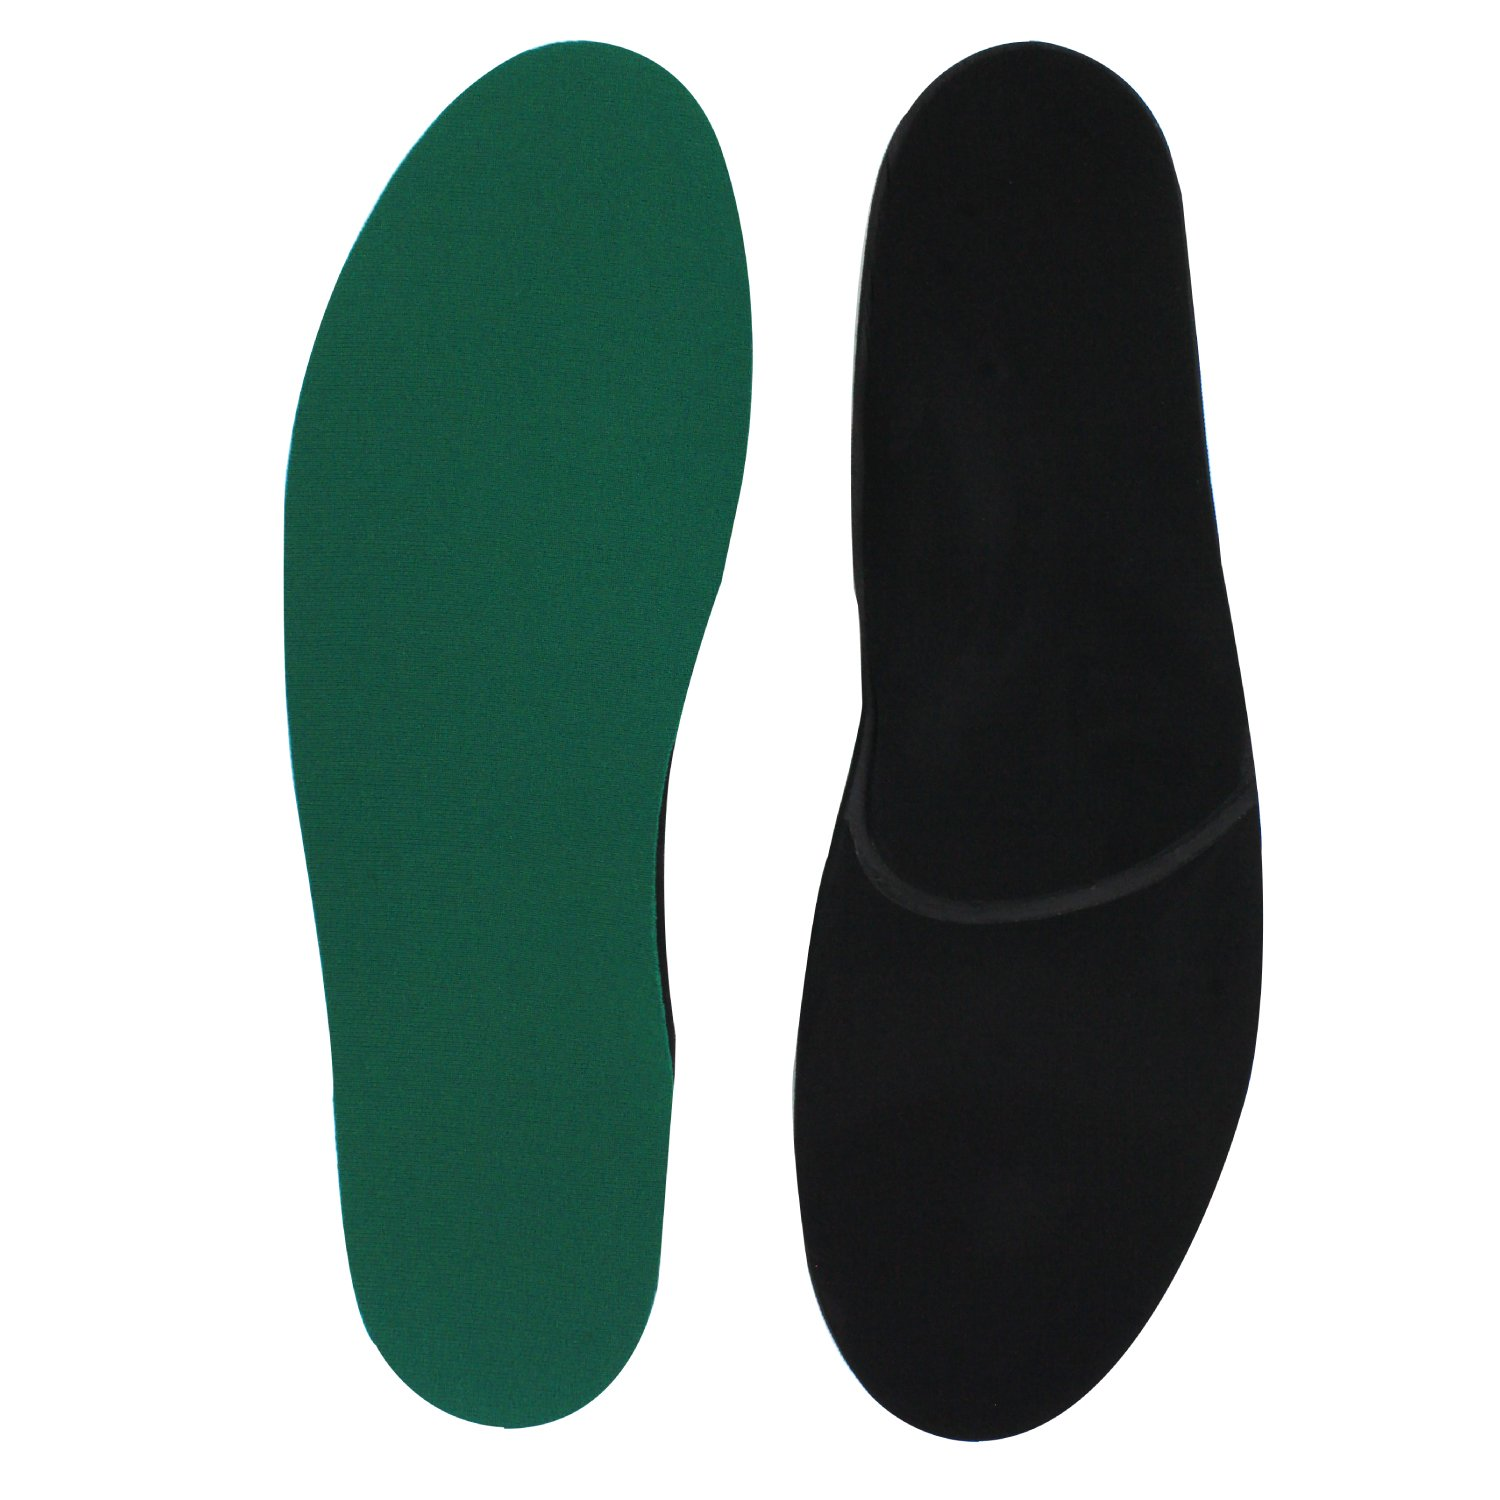 Spenco RX Full Arch Cushion Insole Wcj5m